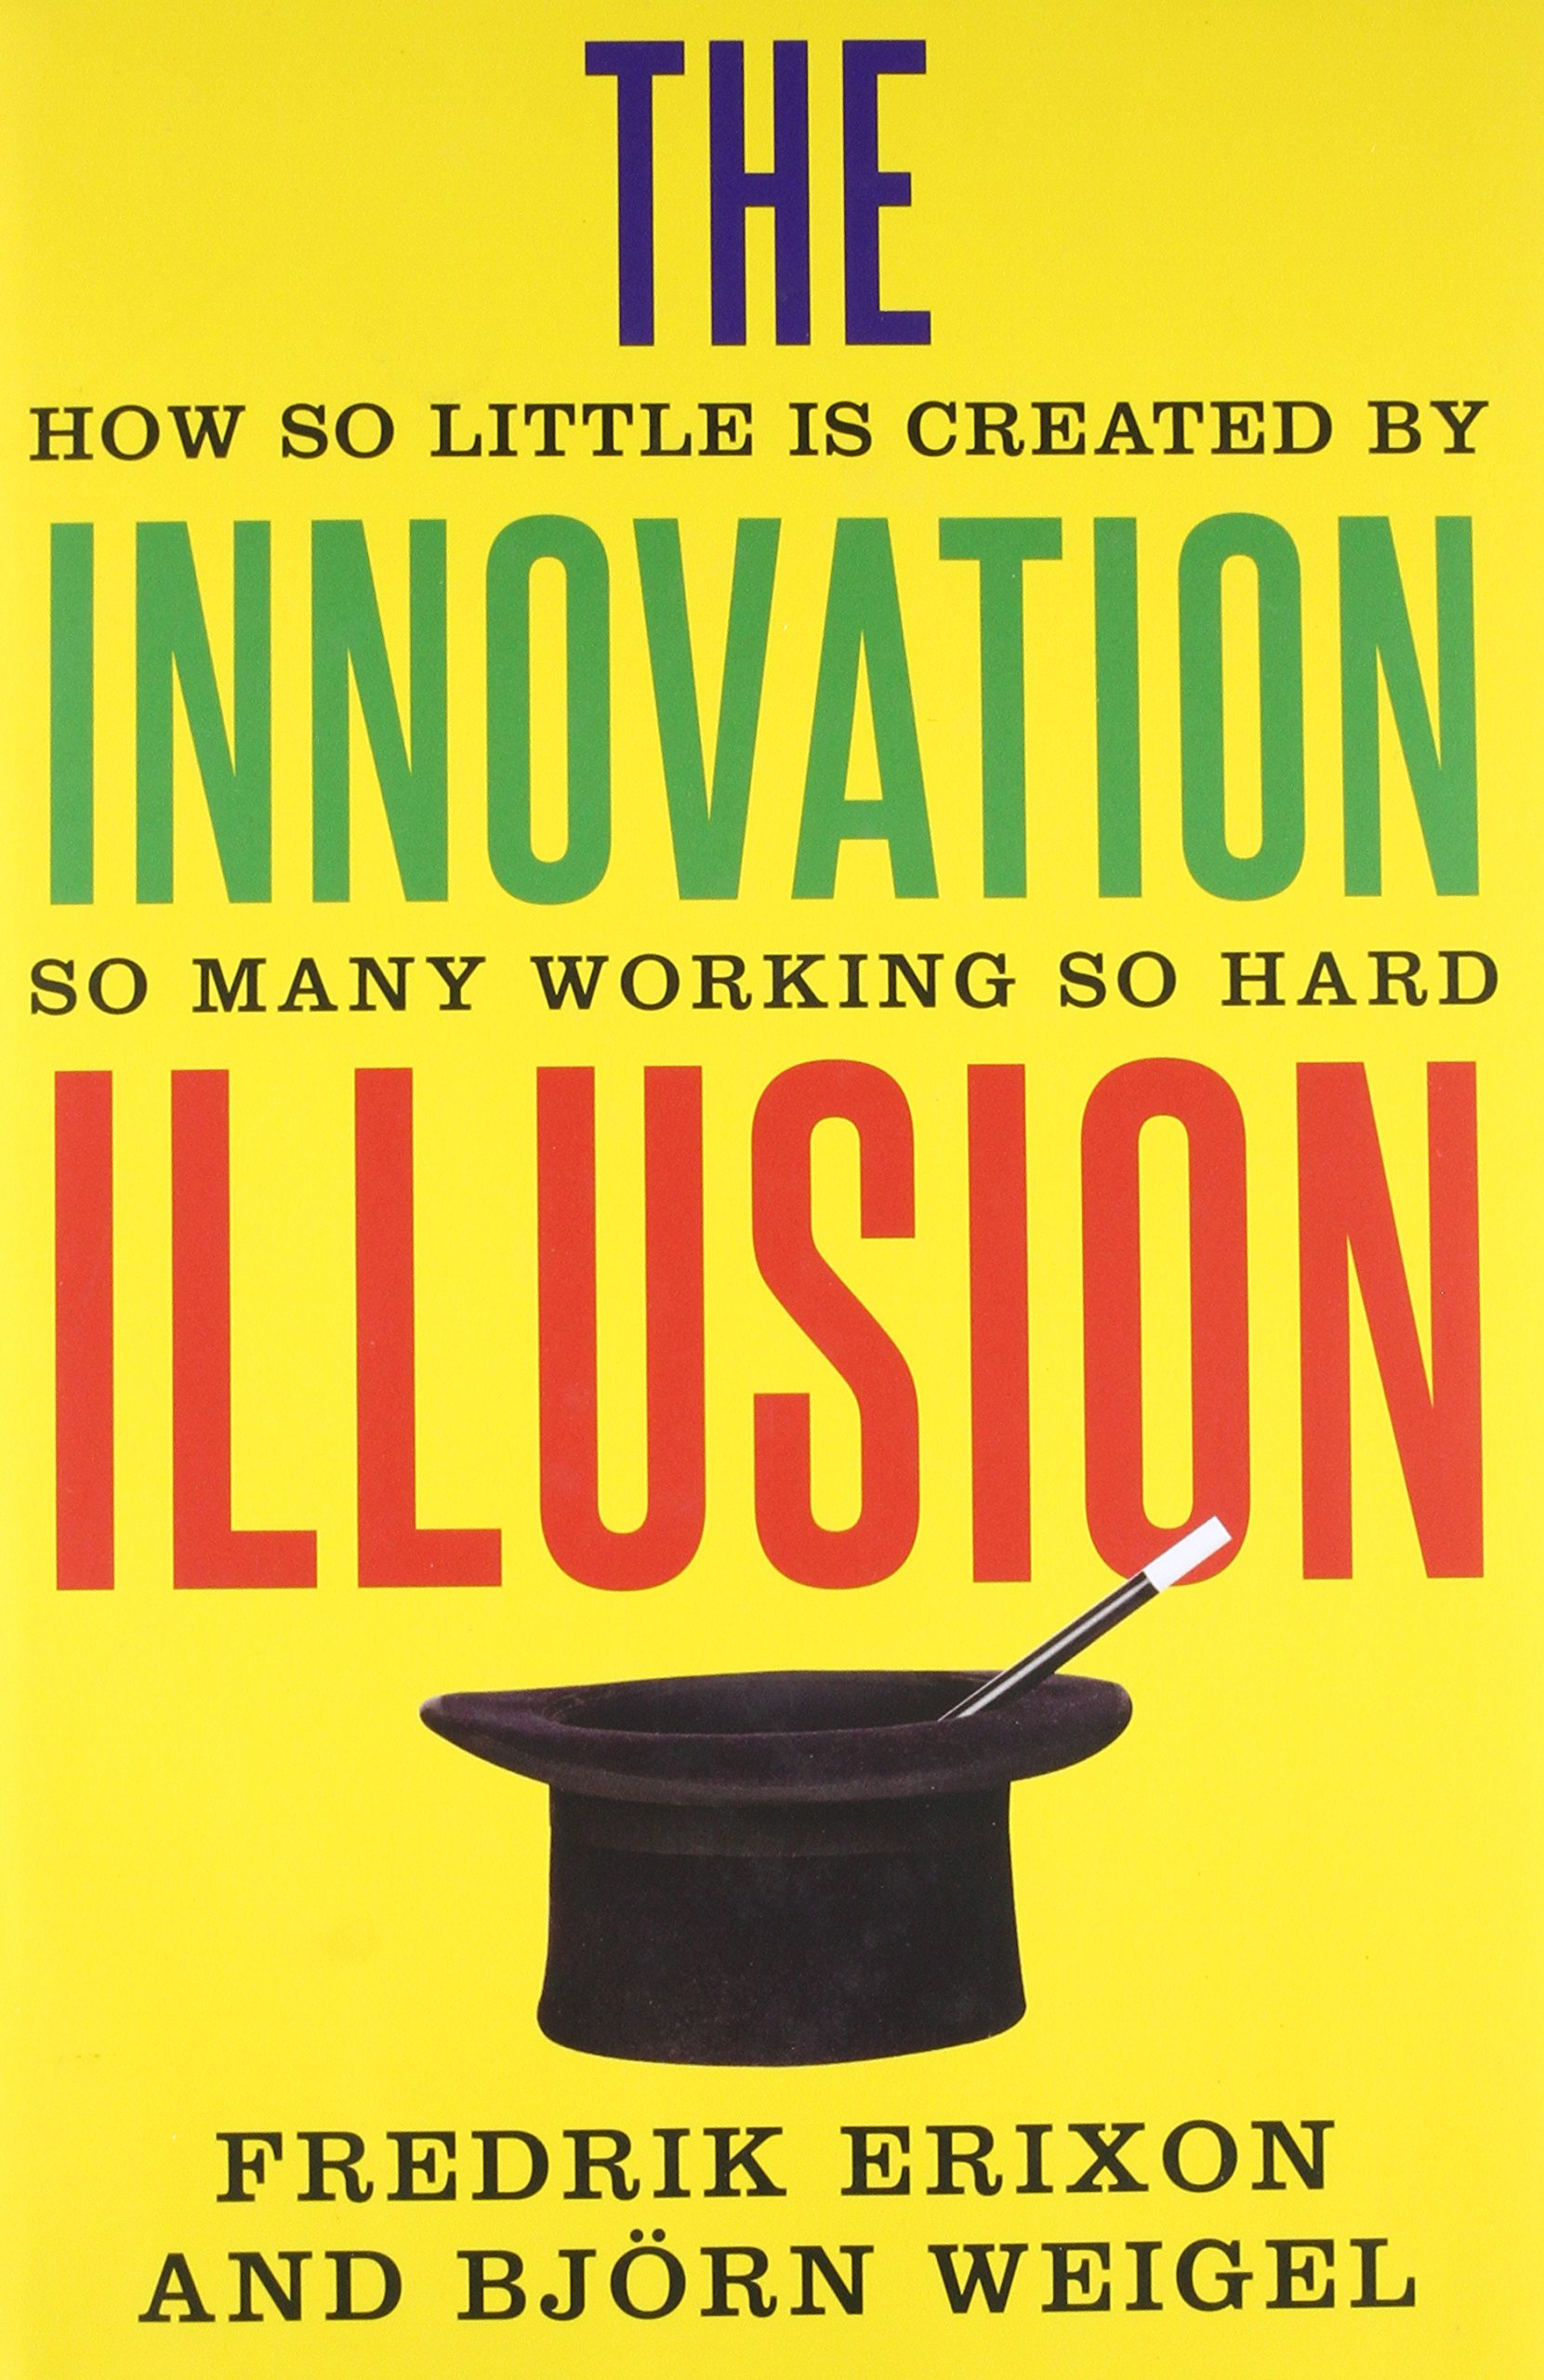 The innovation illusion how so little is created by so many the innovation illusion how so little is created by so many working so hard fredrik erixon bjrn weigel 9780300217407 amazon books fandeluxe Choice Image